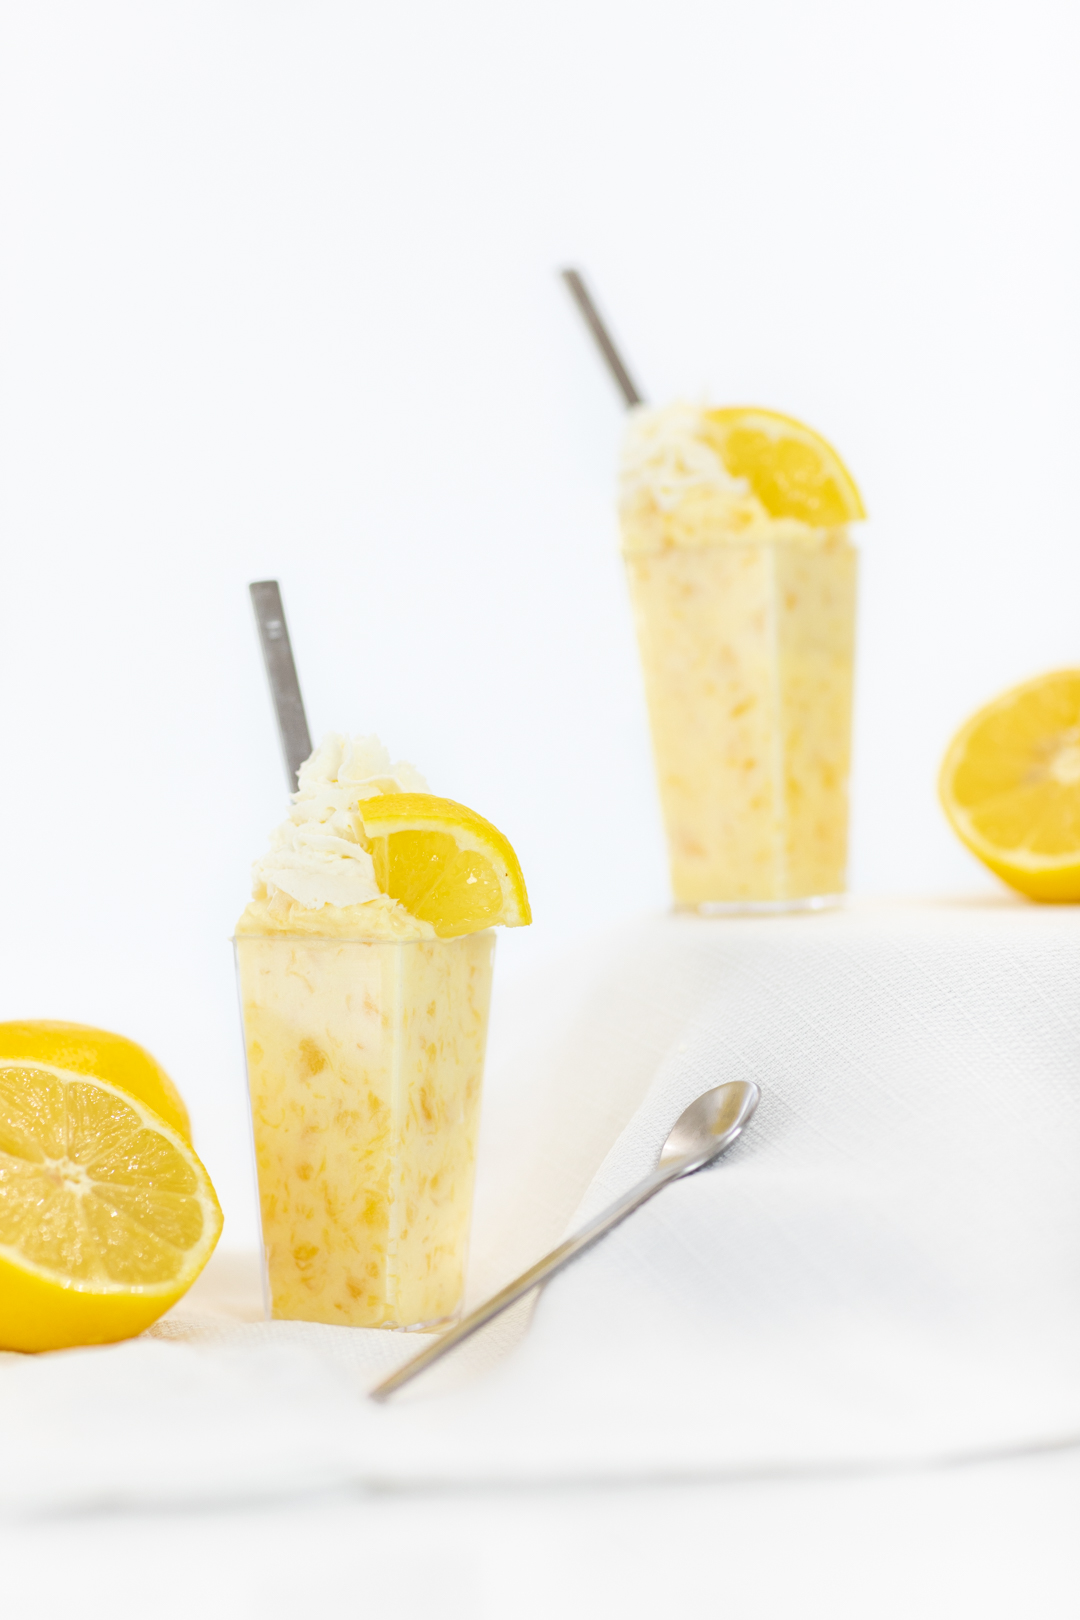 Delish Lemon and Pineapple Dessert Parfait topped with Fresh Lemon Wedges